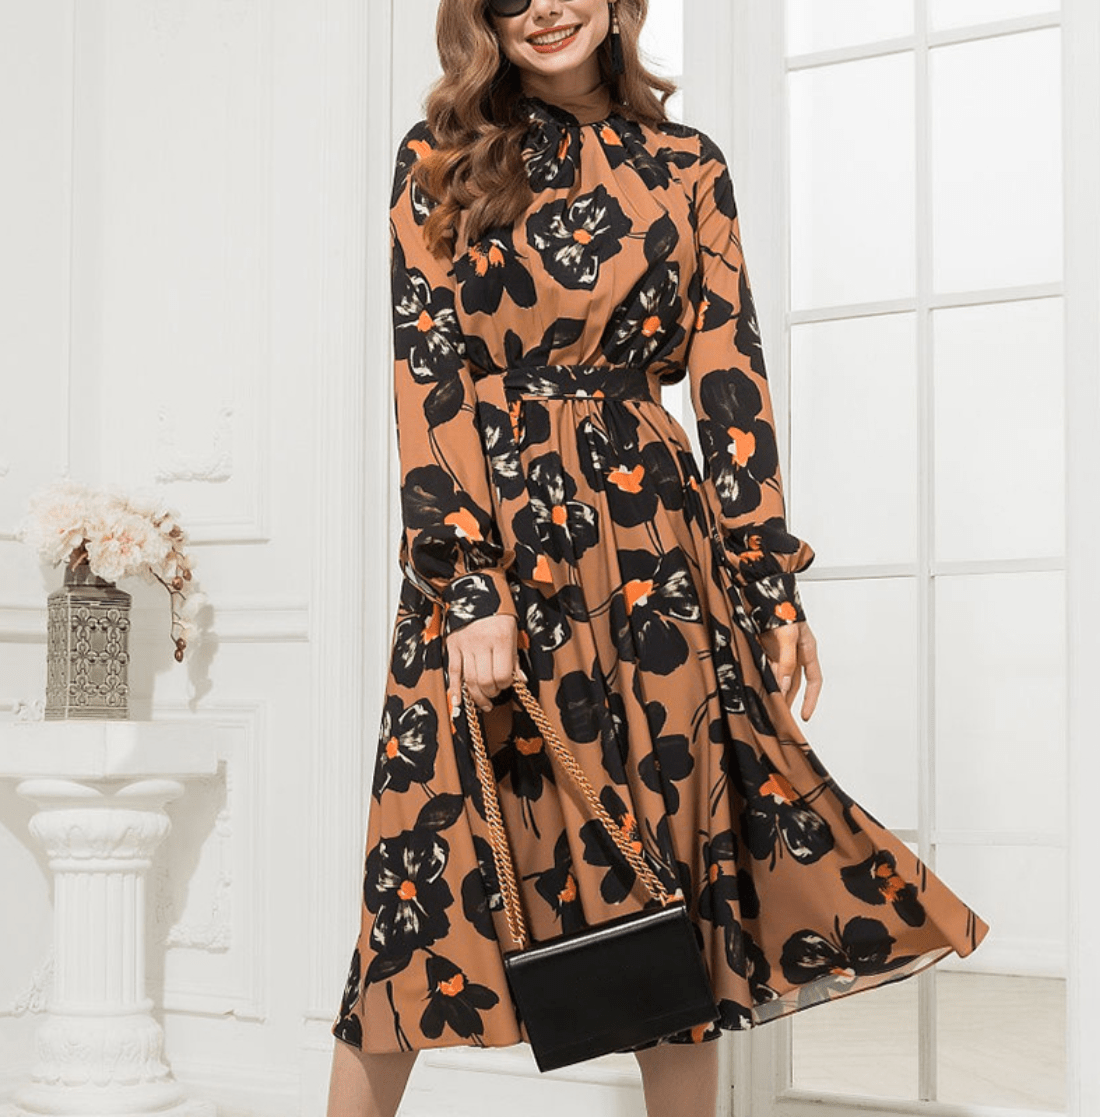 NEW ELEGANT CASUAL TURTLENECK A LINE LONG SLEEVE PRINT DRESS